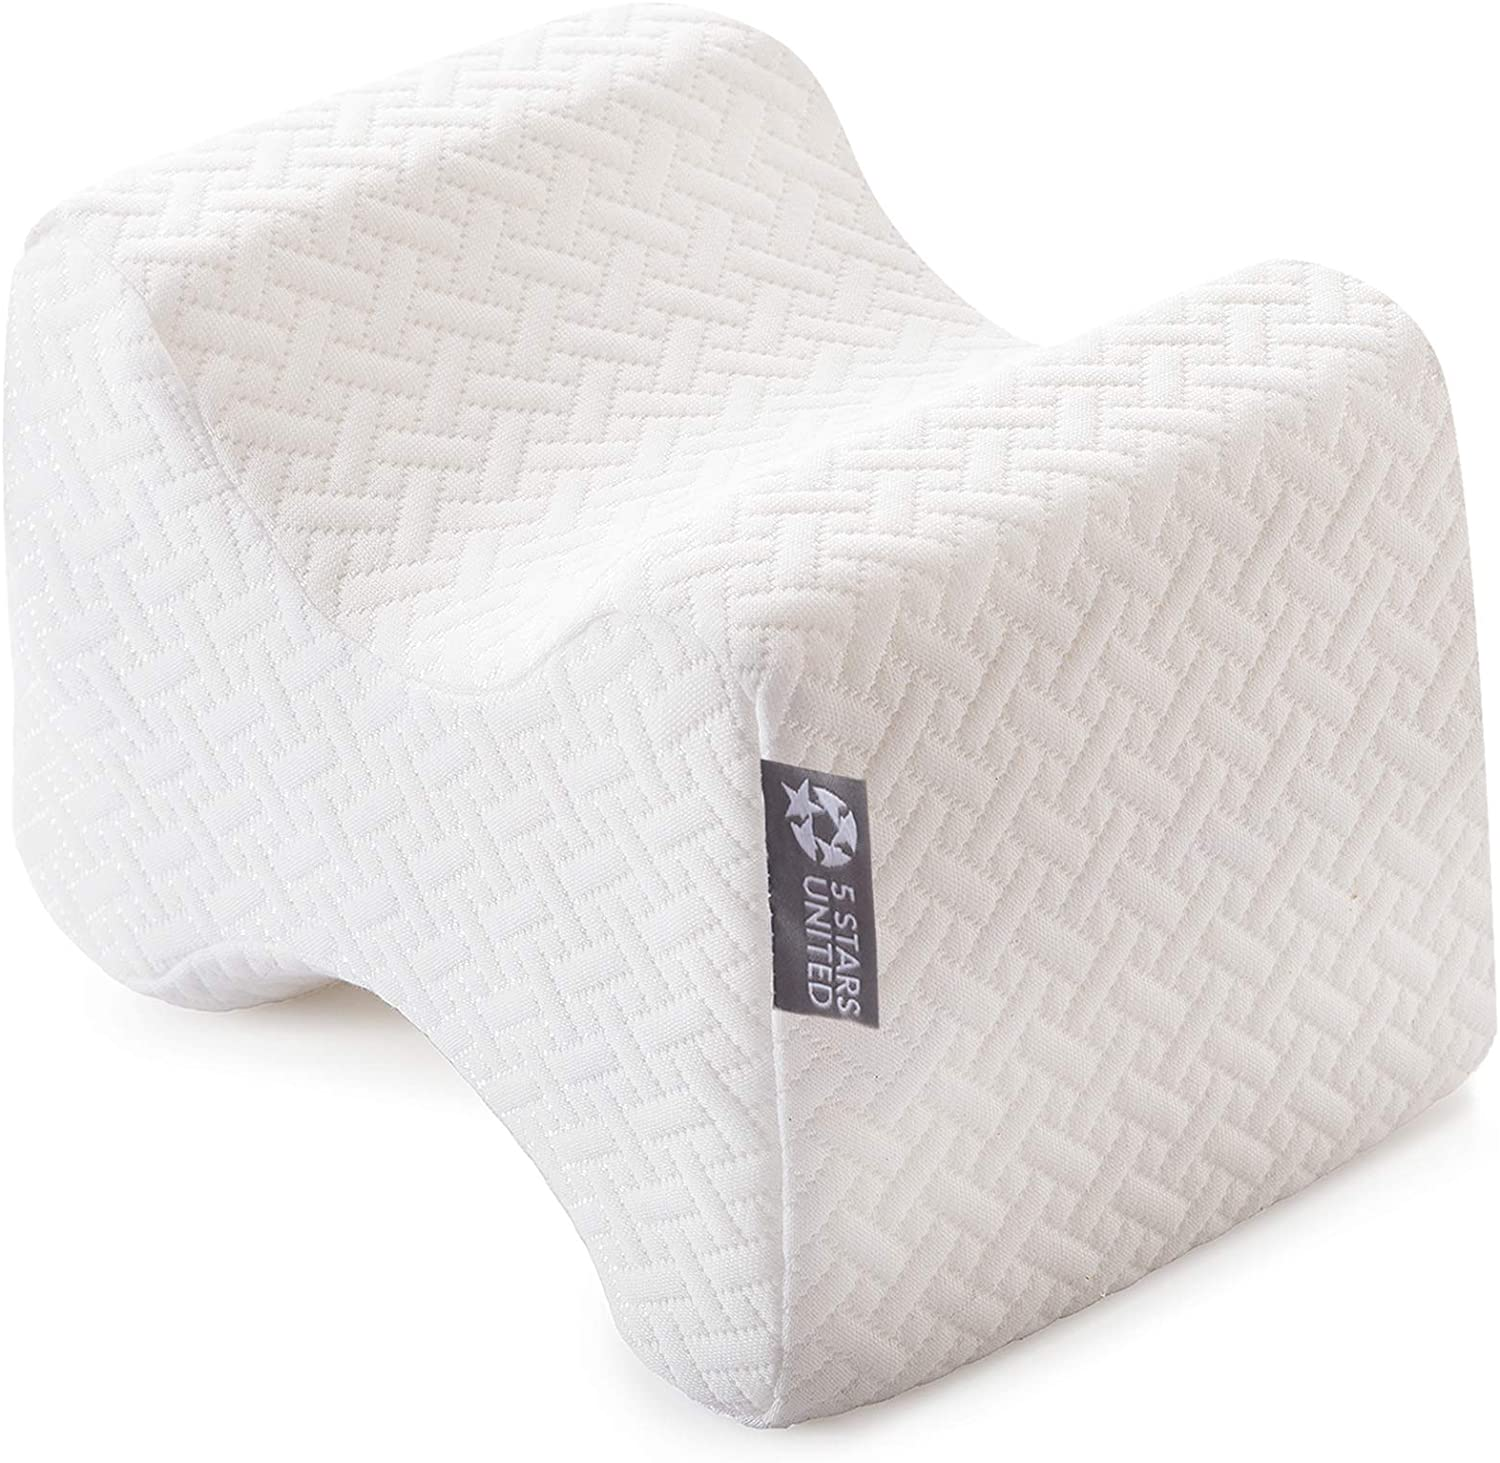 Hip Back Sciatica Joint BEAUTRIP Knee Pillow for Side Sleepers Pregnancy Support Spacer Cushion for Spine Alignment Surgery Pain Relief Memory Foam Wedge Pillow Leg Pillows for Sleeping